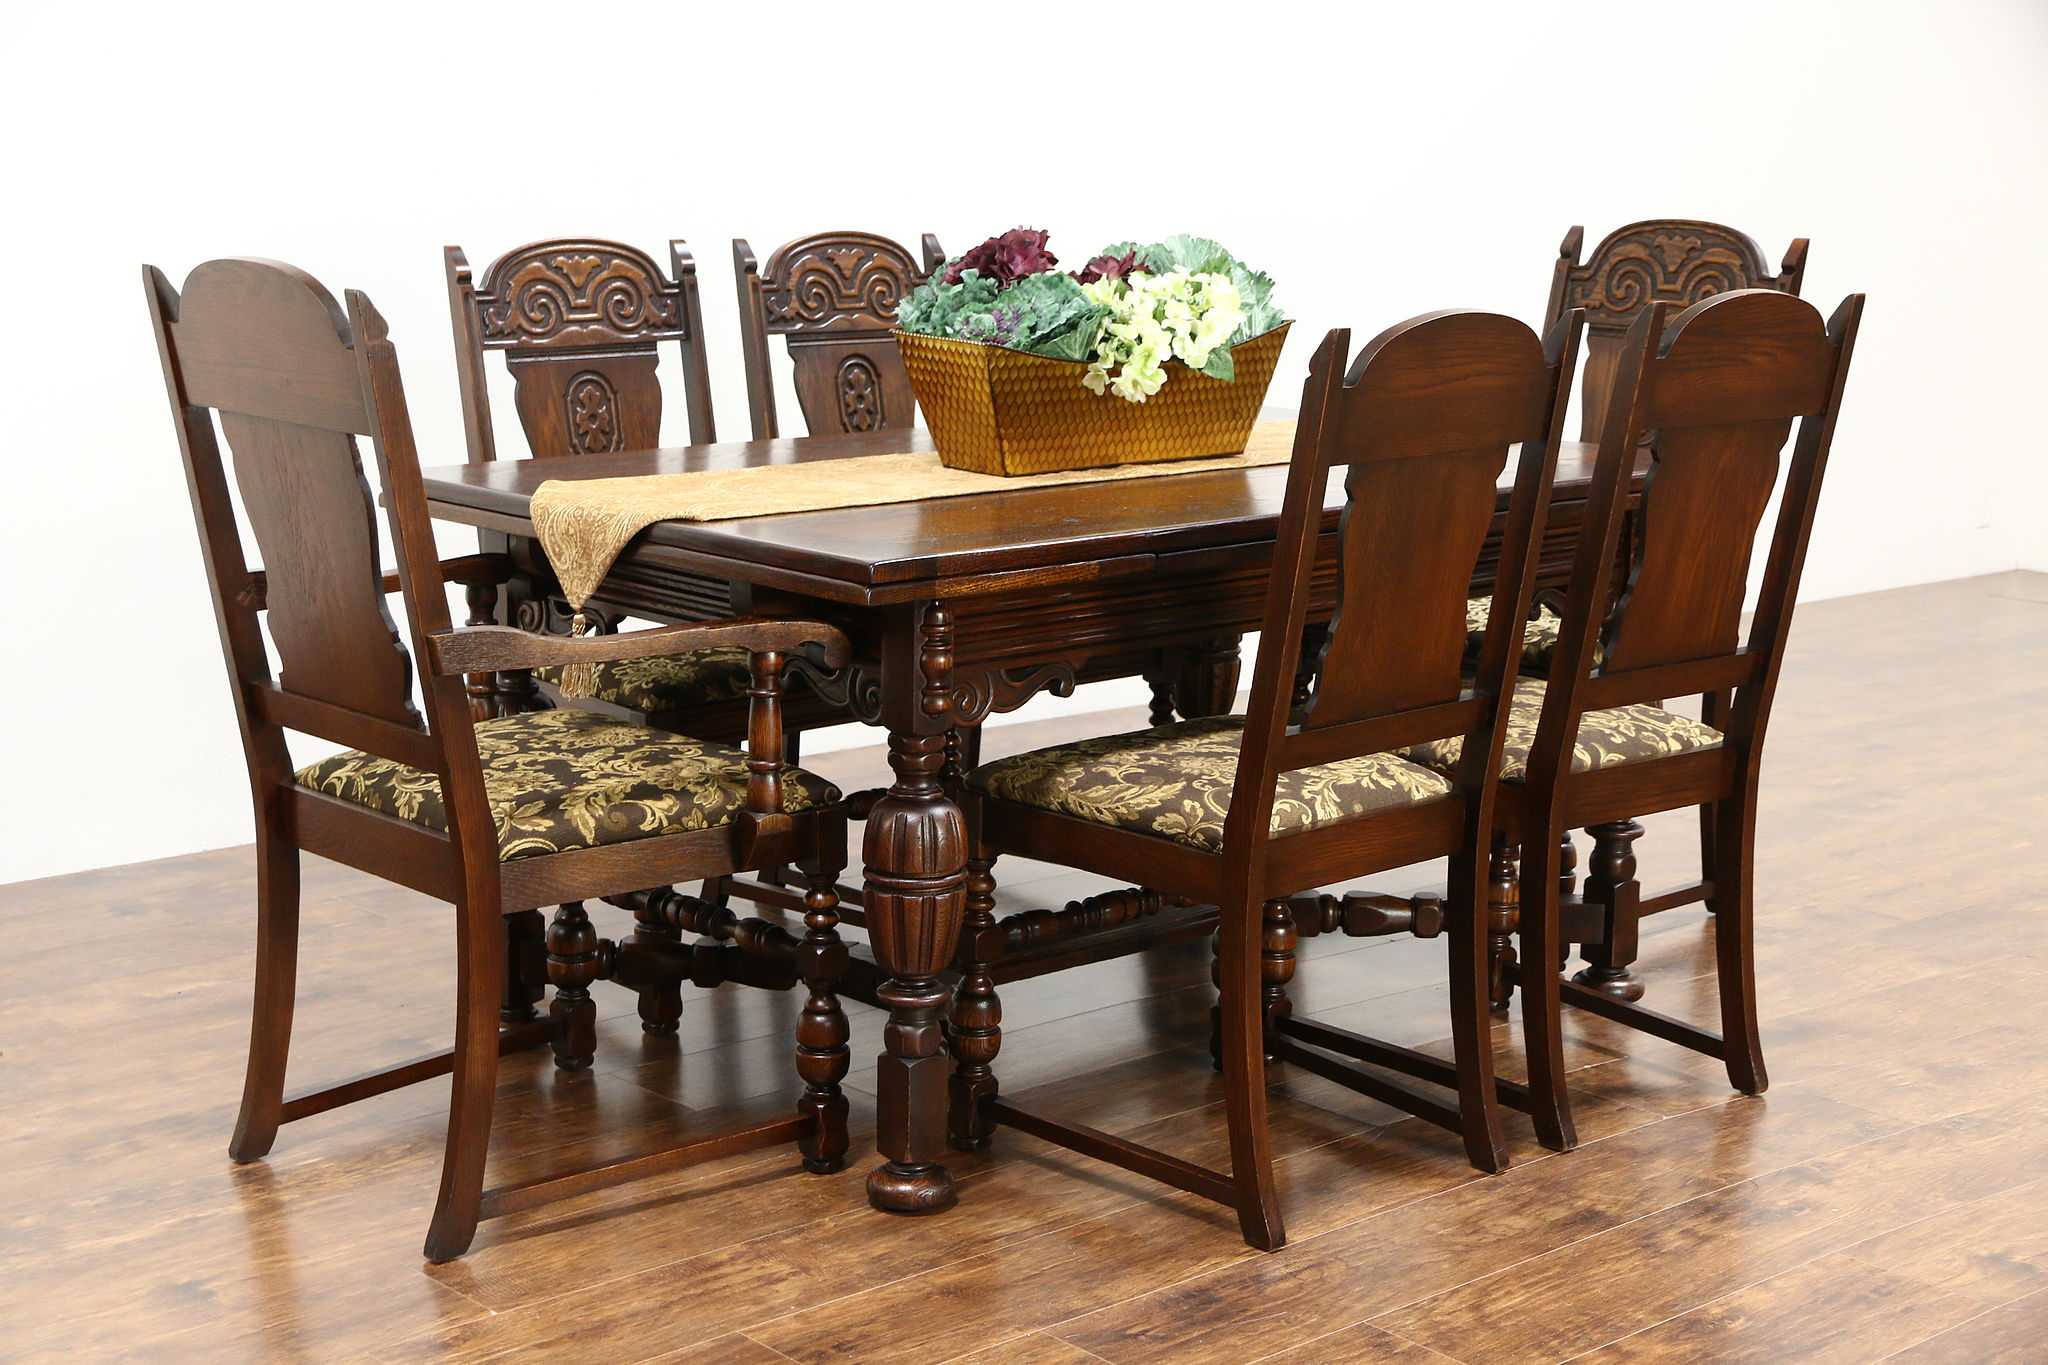 oak dining set 6 chairs chair that will stand you up sold english tudor style 1920 antique new upholstery table harp gallery